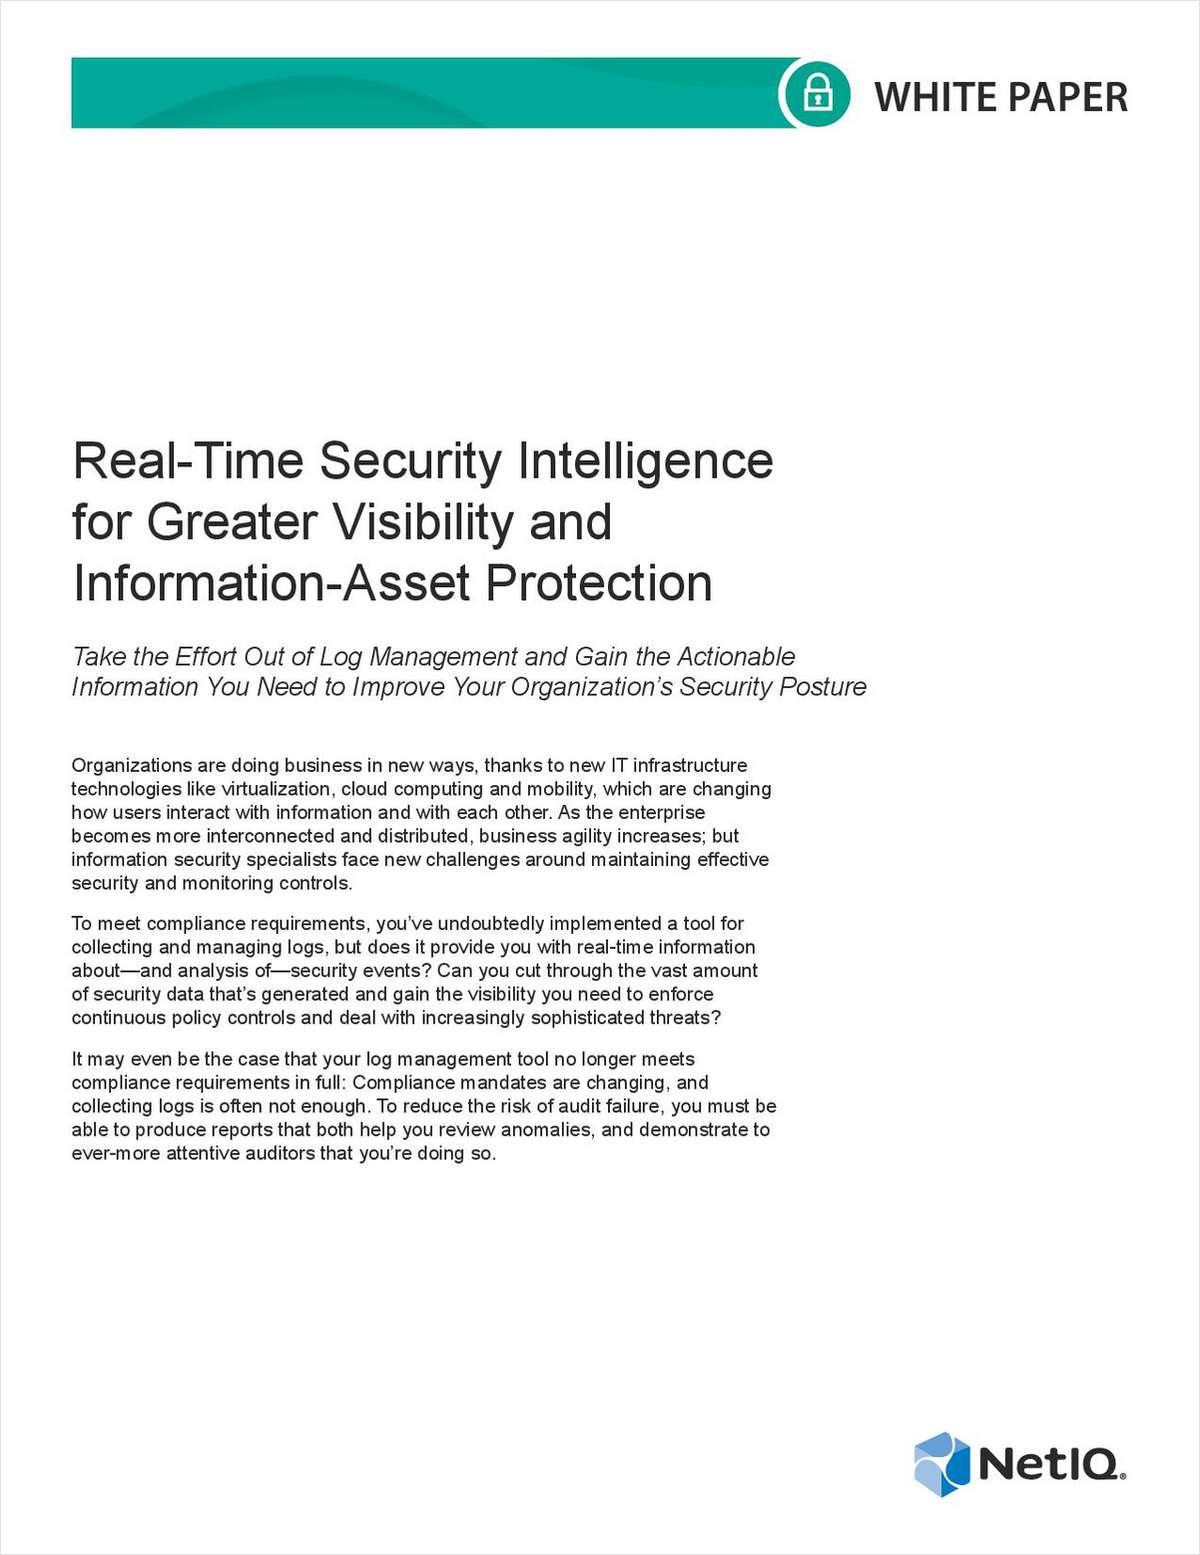 Real-Time Security Intelligence for Greater Visibility and Information-Asset Protection